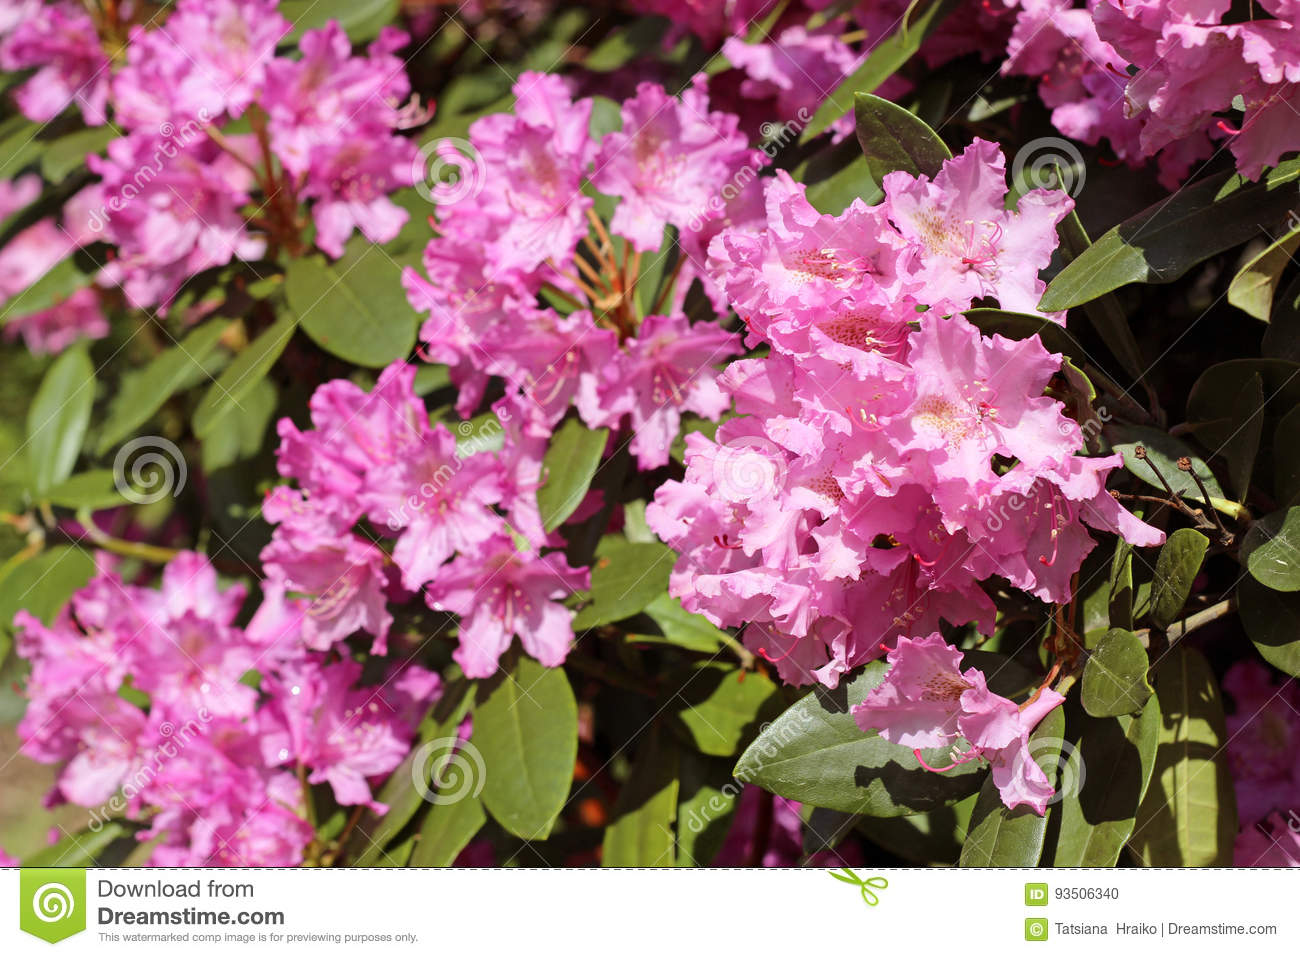 Pink Azalea Flowers With Water Droplets On The Petals In The Sun